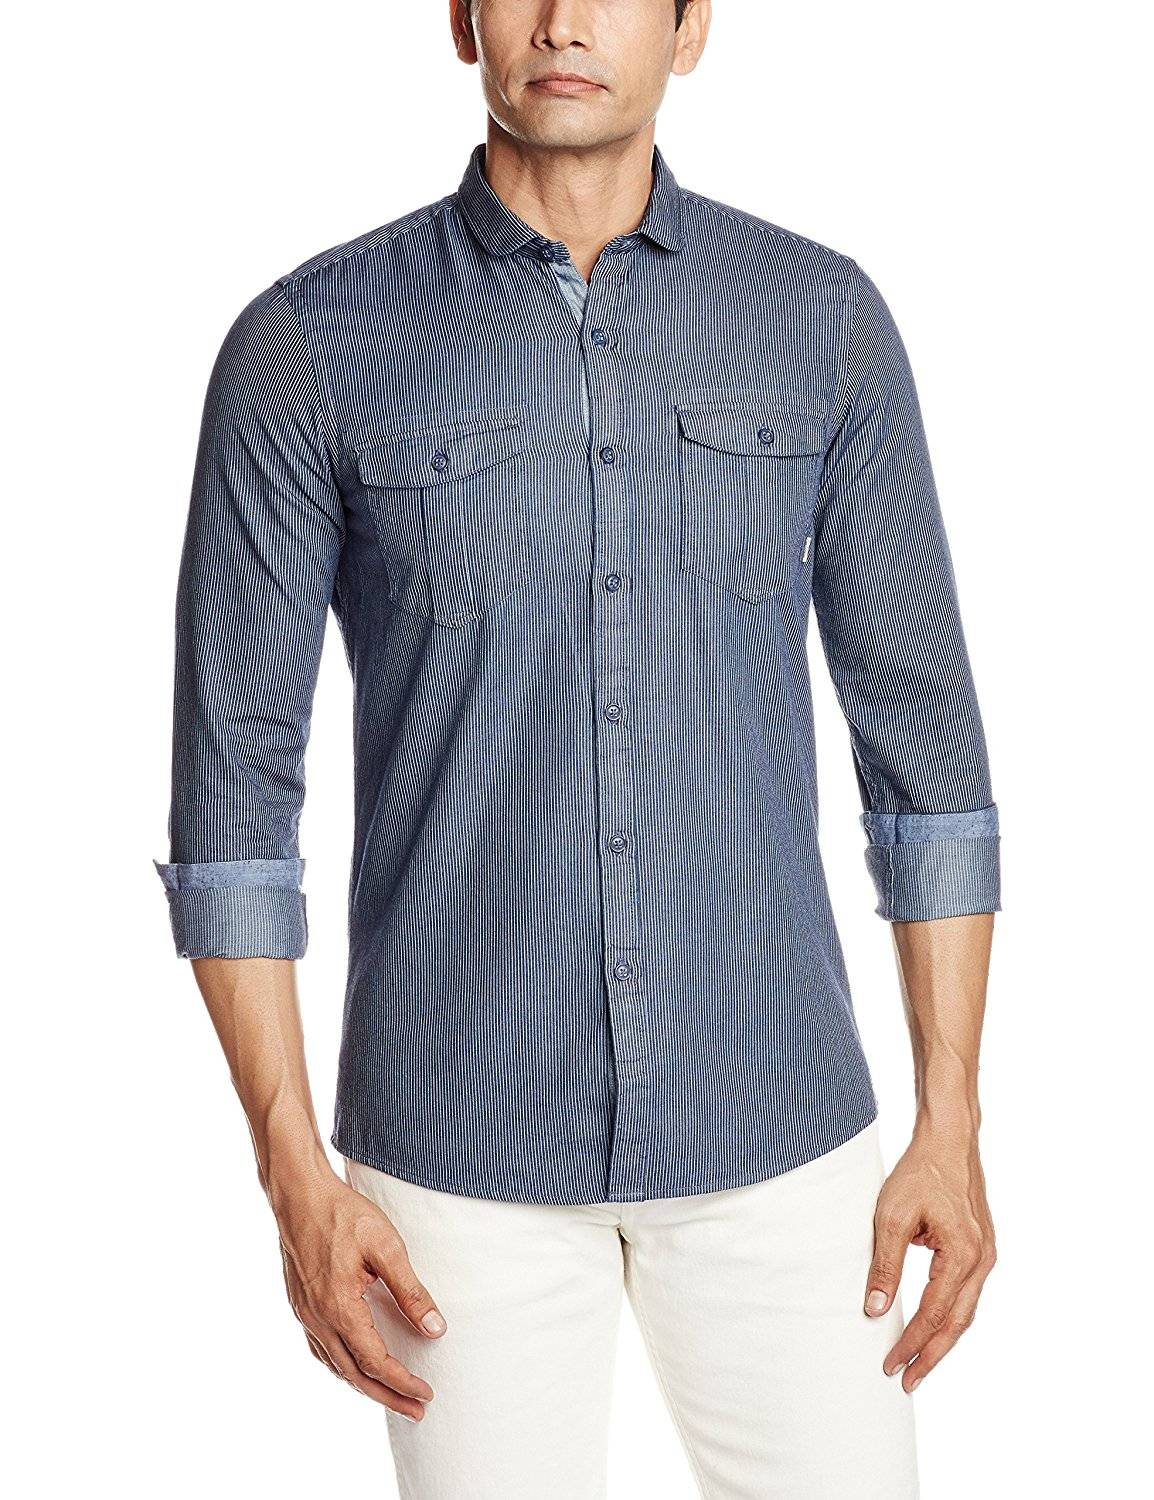 Flat 70% Off on Men Shirts from UCB, Allen Solly, French Connection and Many More